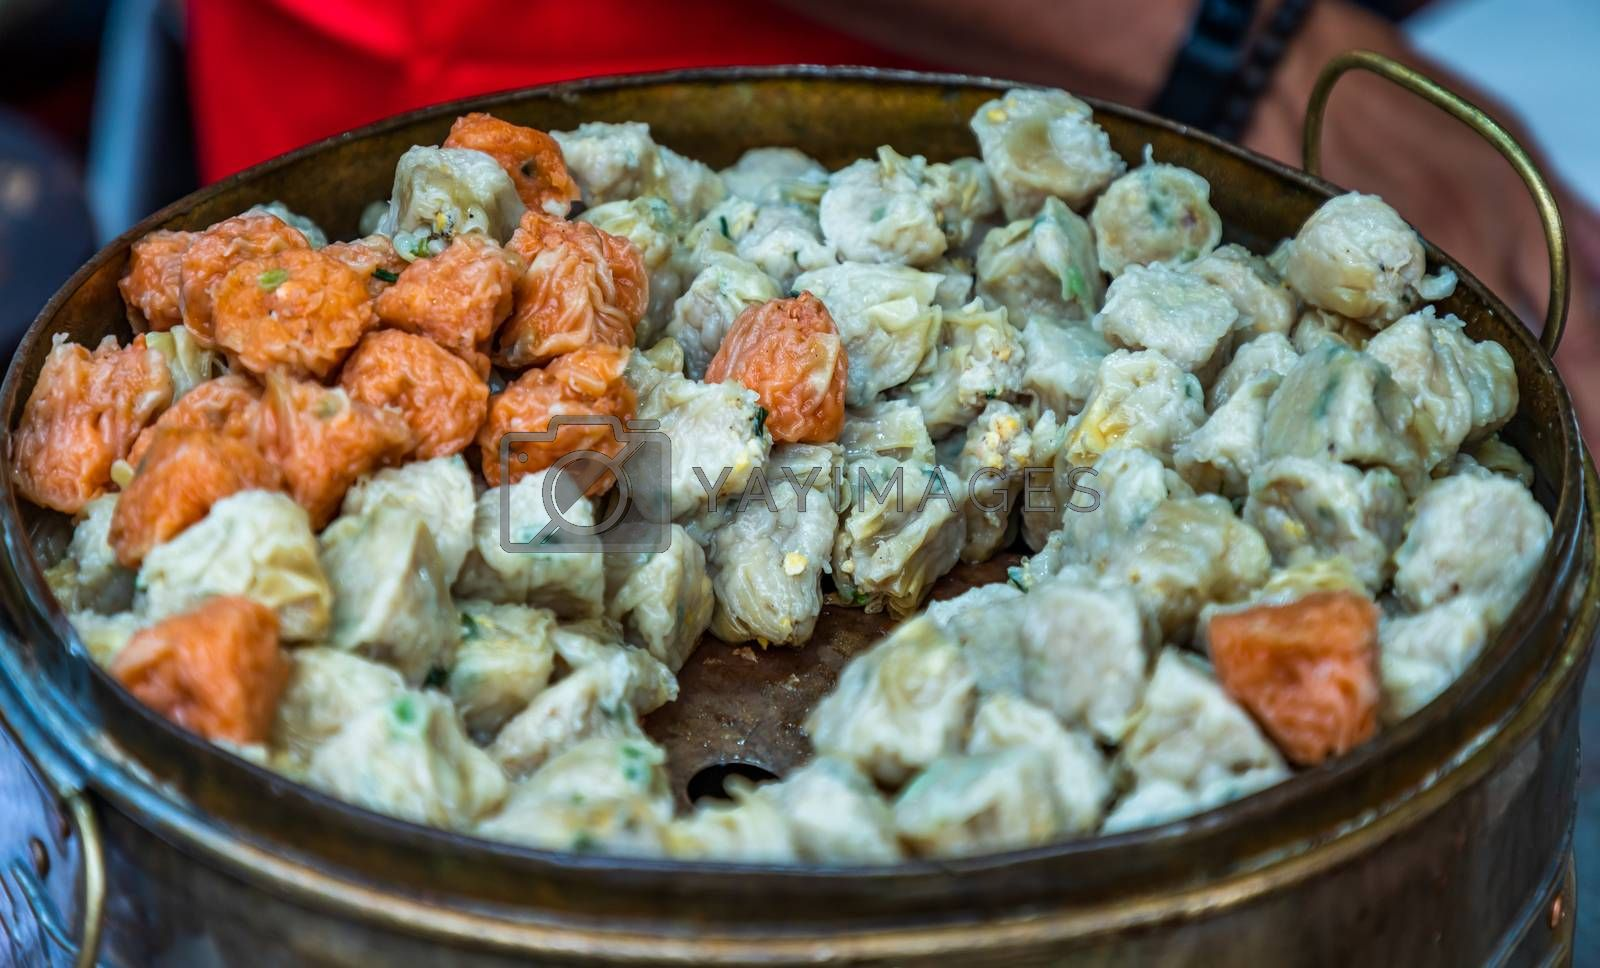 'Shumai' (Shaomai) or Kanom Jeeb' a 'Dim Sum' Chinese traditional steamed dumplings food with shrimp and pork inside in metal tray for sale at street market. Traditional breakfast asian styles. Selective focus.